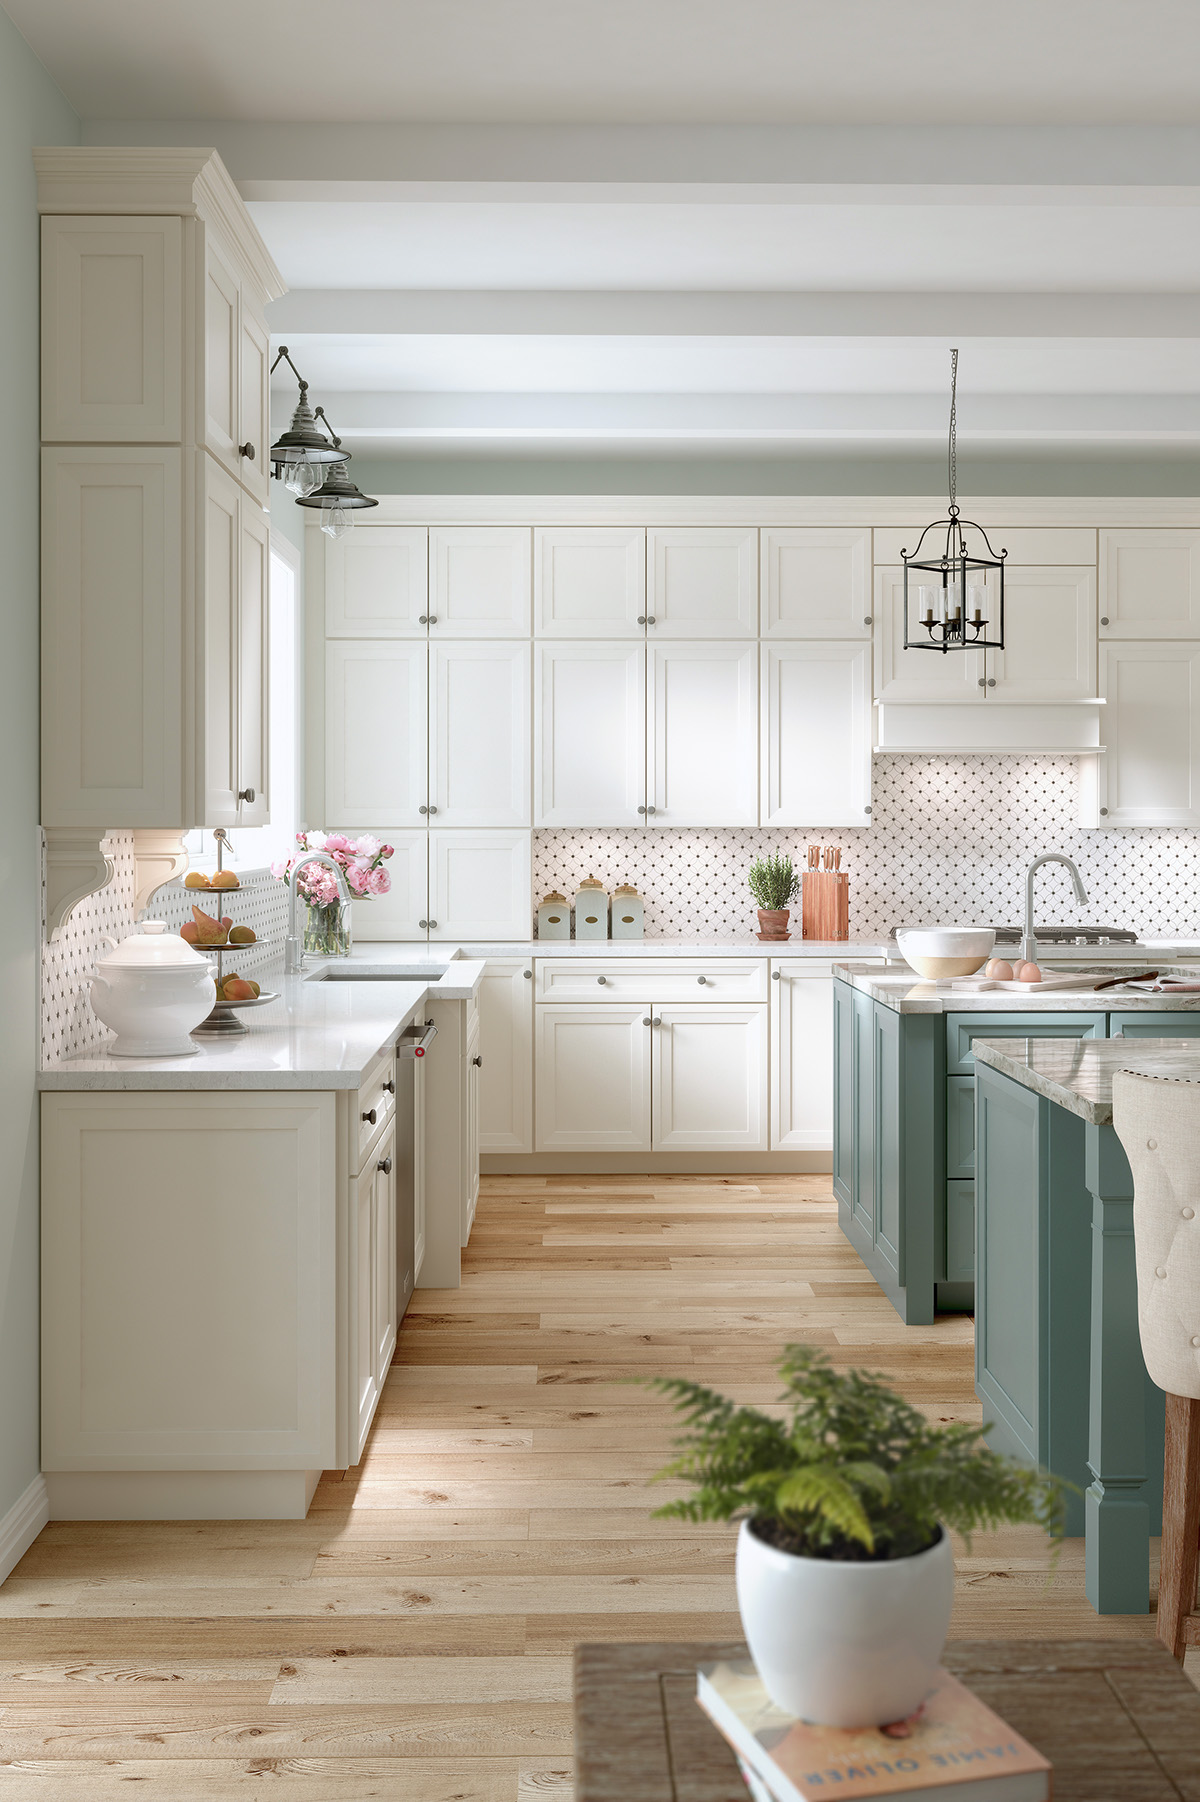 A selection of kitchen CGI projects completed